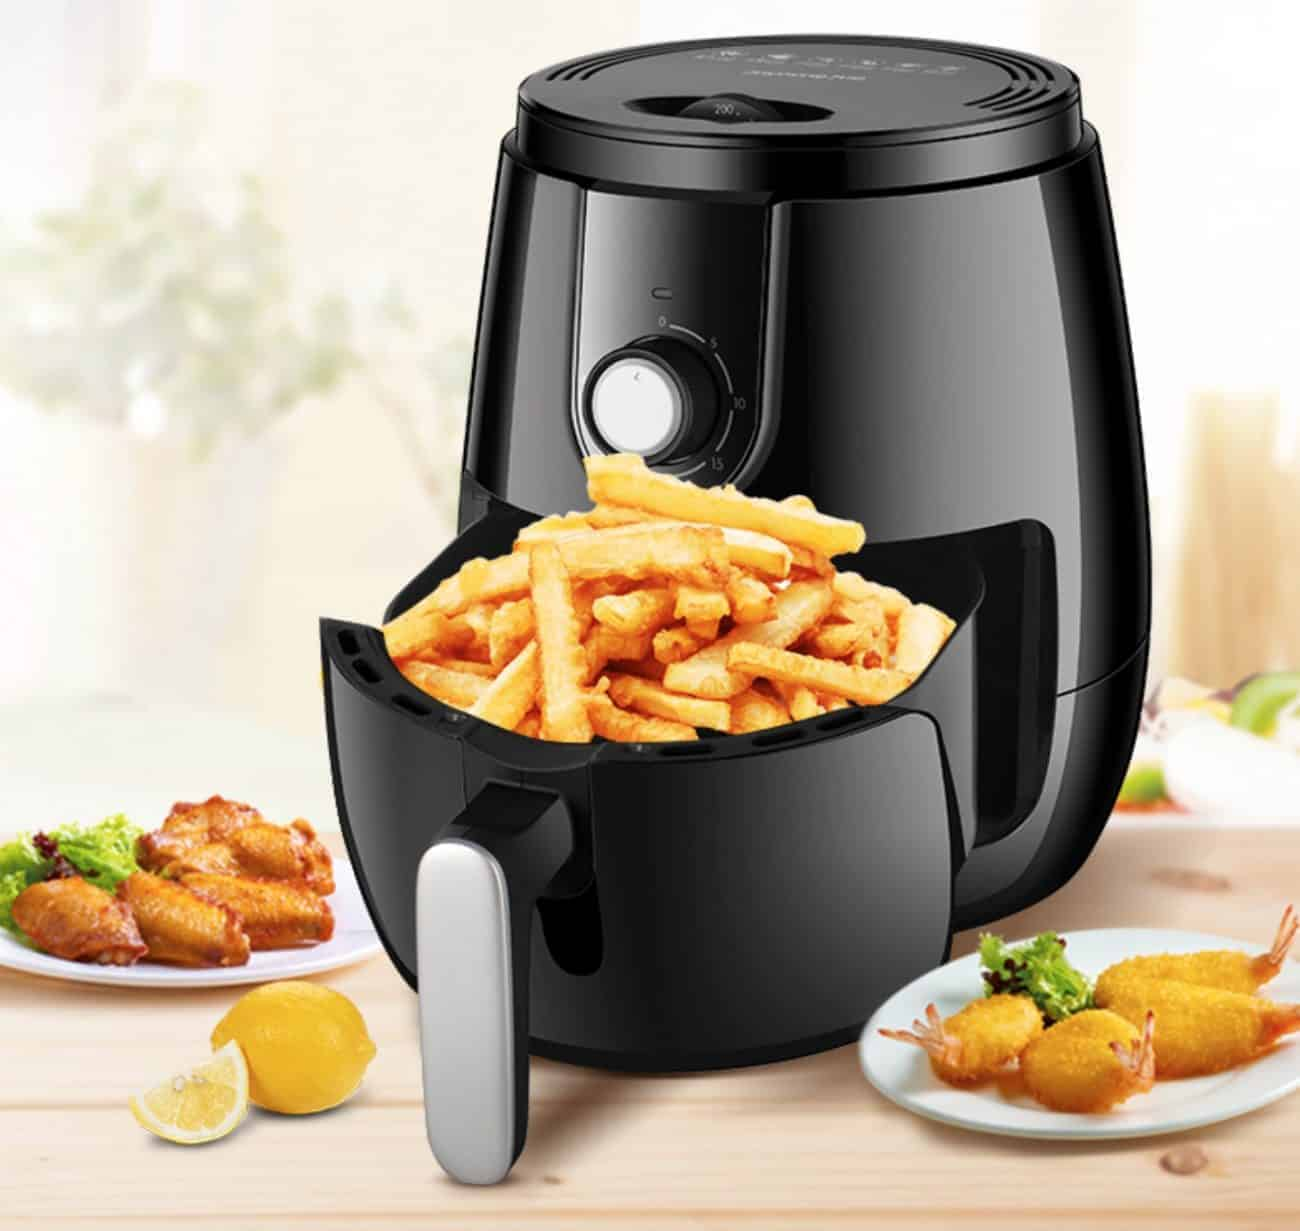 Top Best Air Fryers Based on Reviews and Price